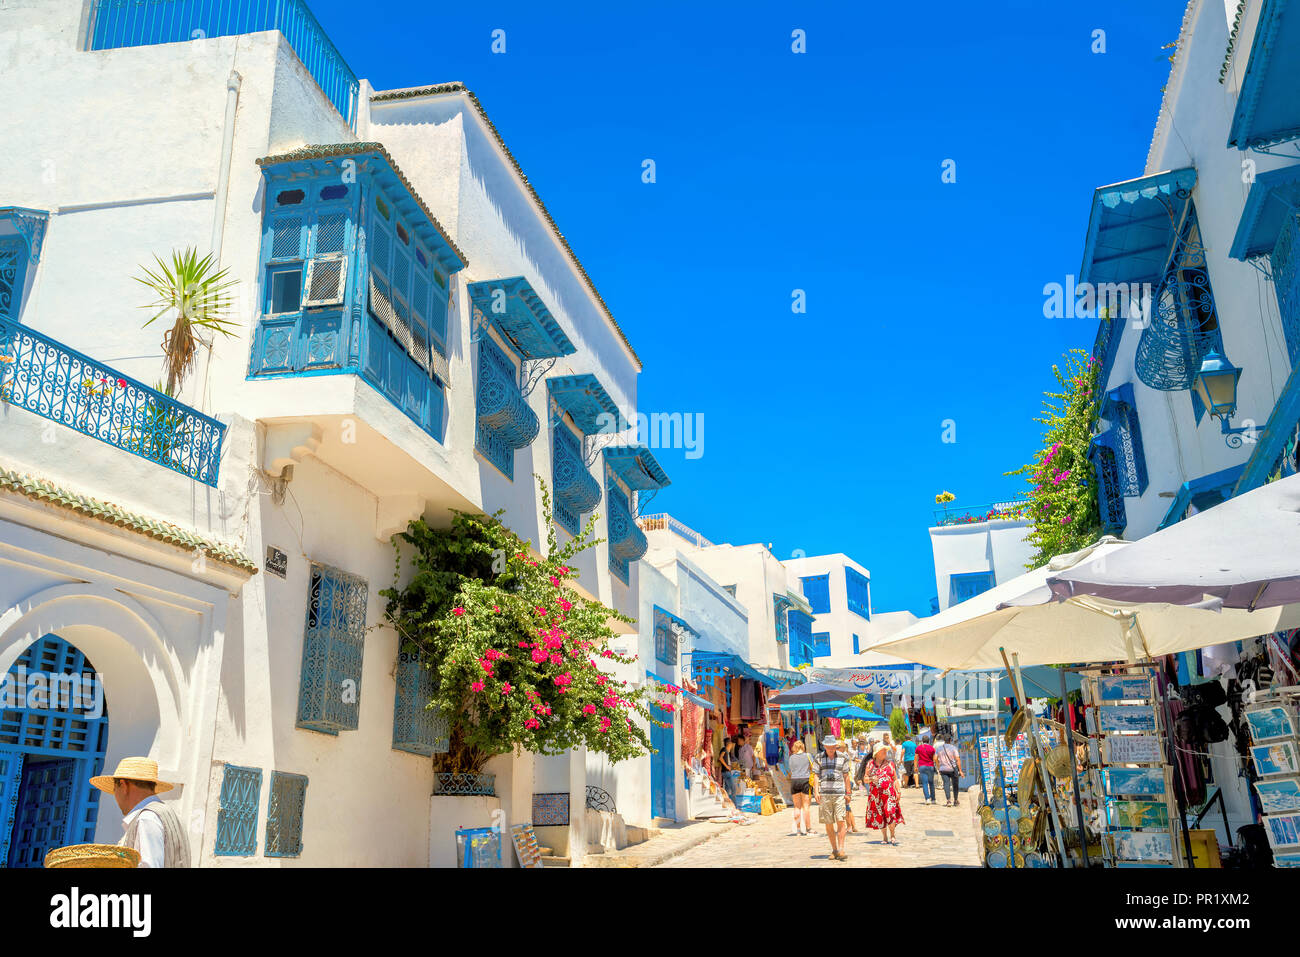 Main shopping street  in white blue town Sidi Bou Said. Tunisia, North Africa - Stock Image